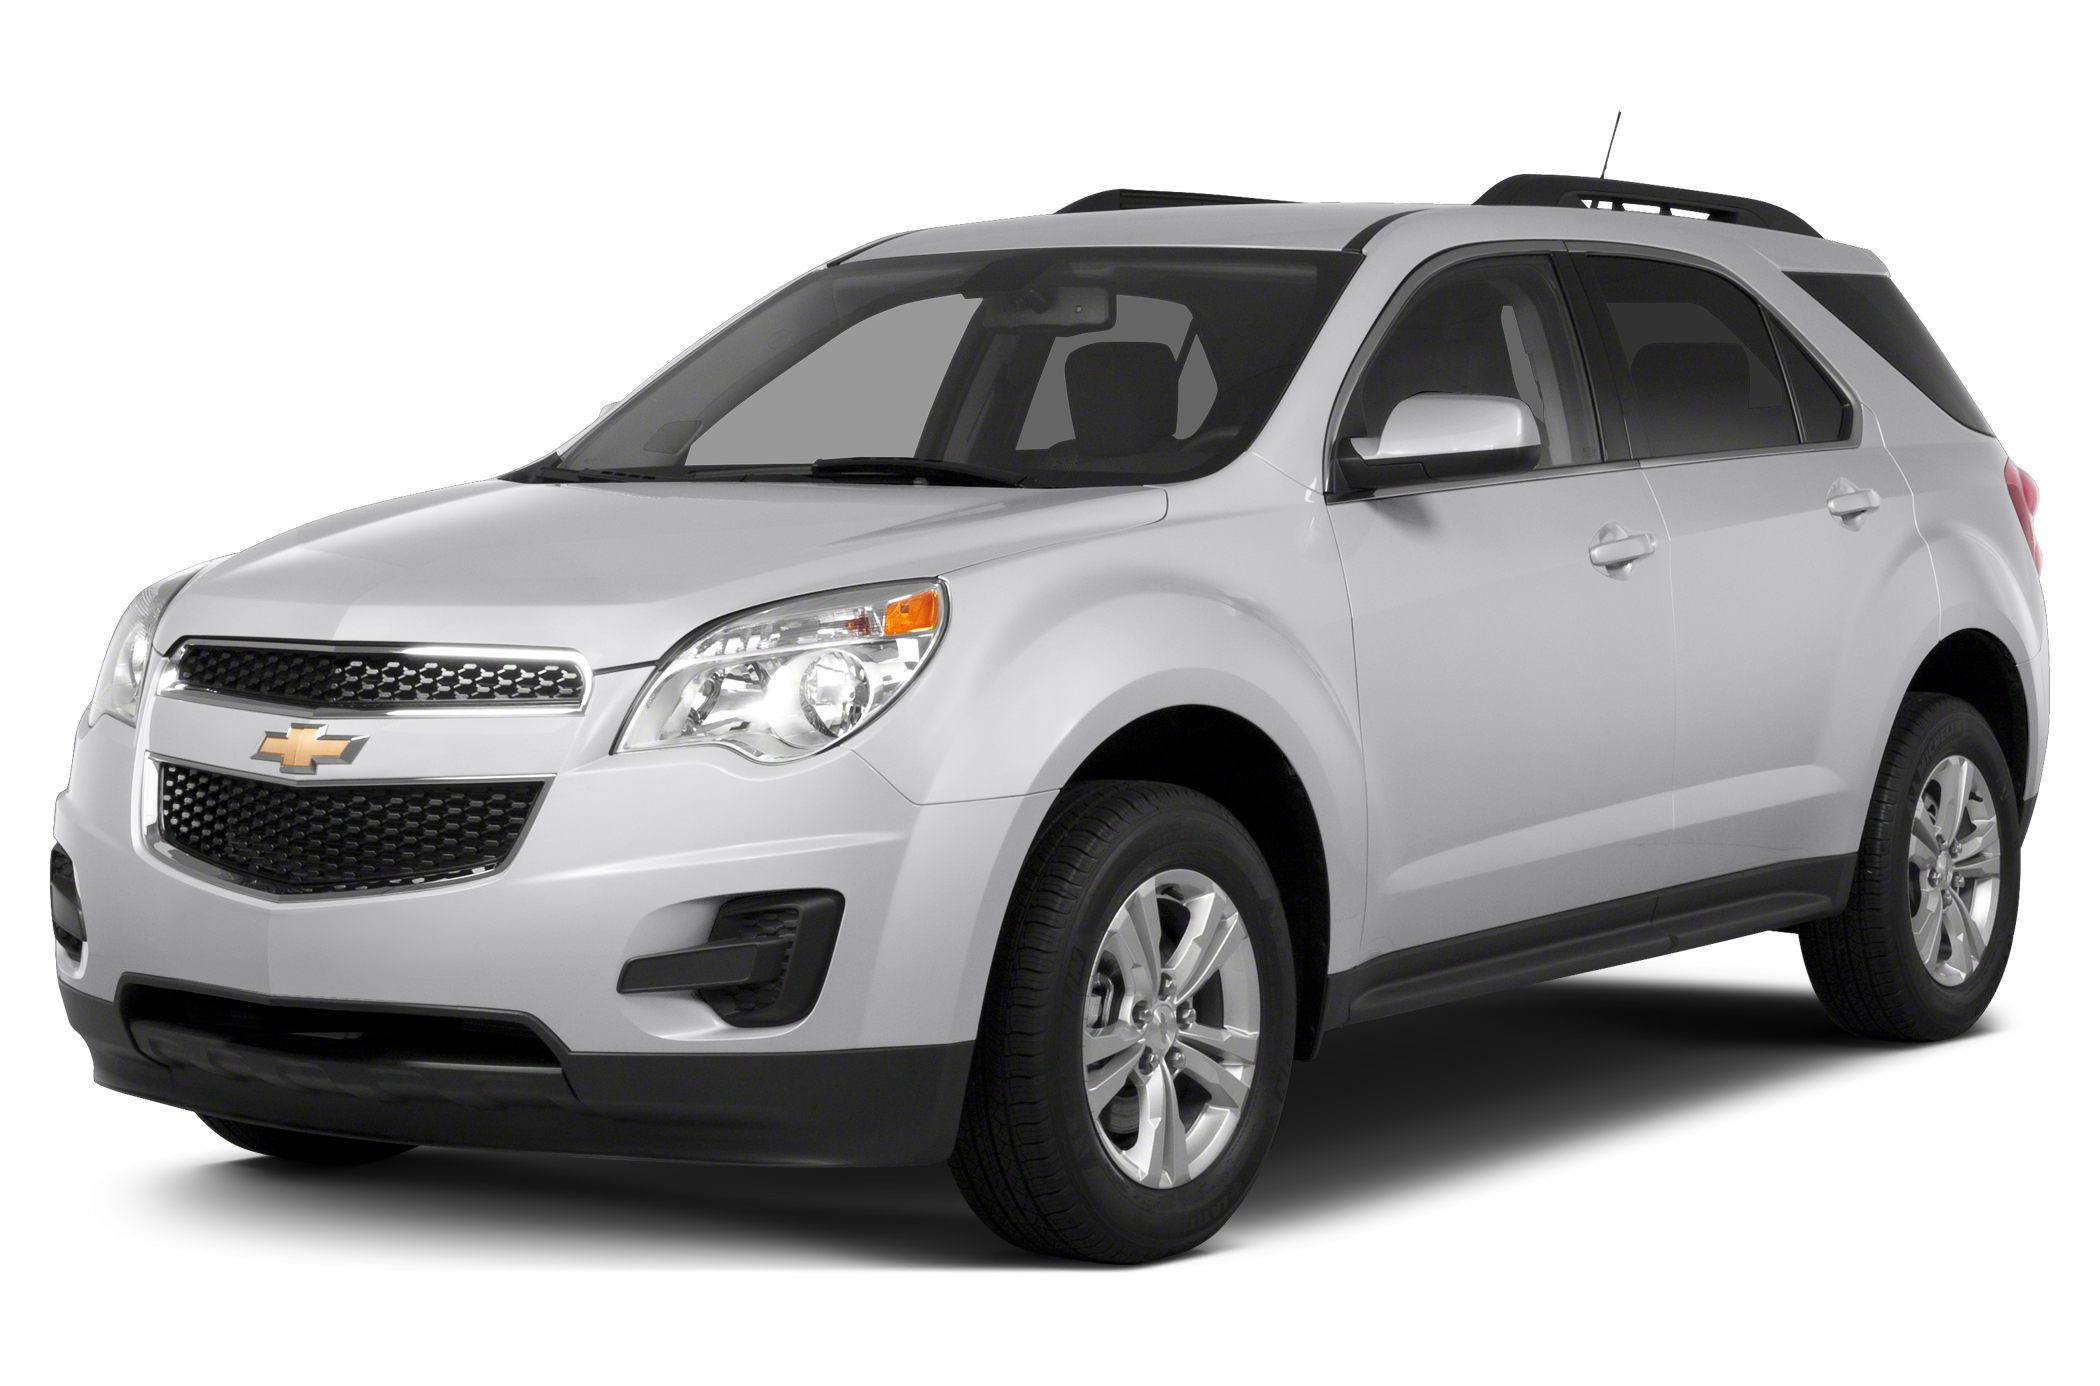 2015 Chevrolet Equinox Specs Safety Rating & MPG CarsDirect